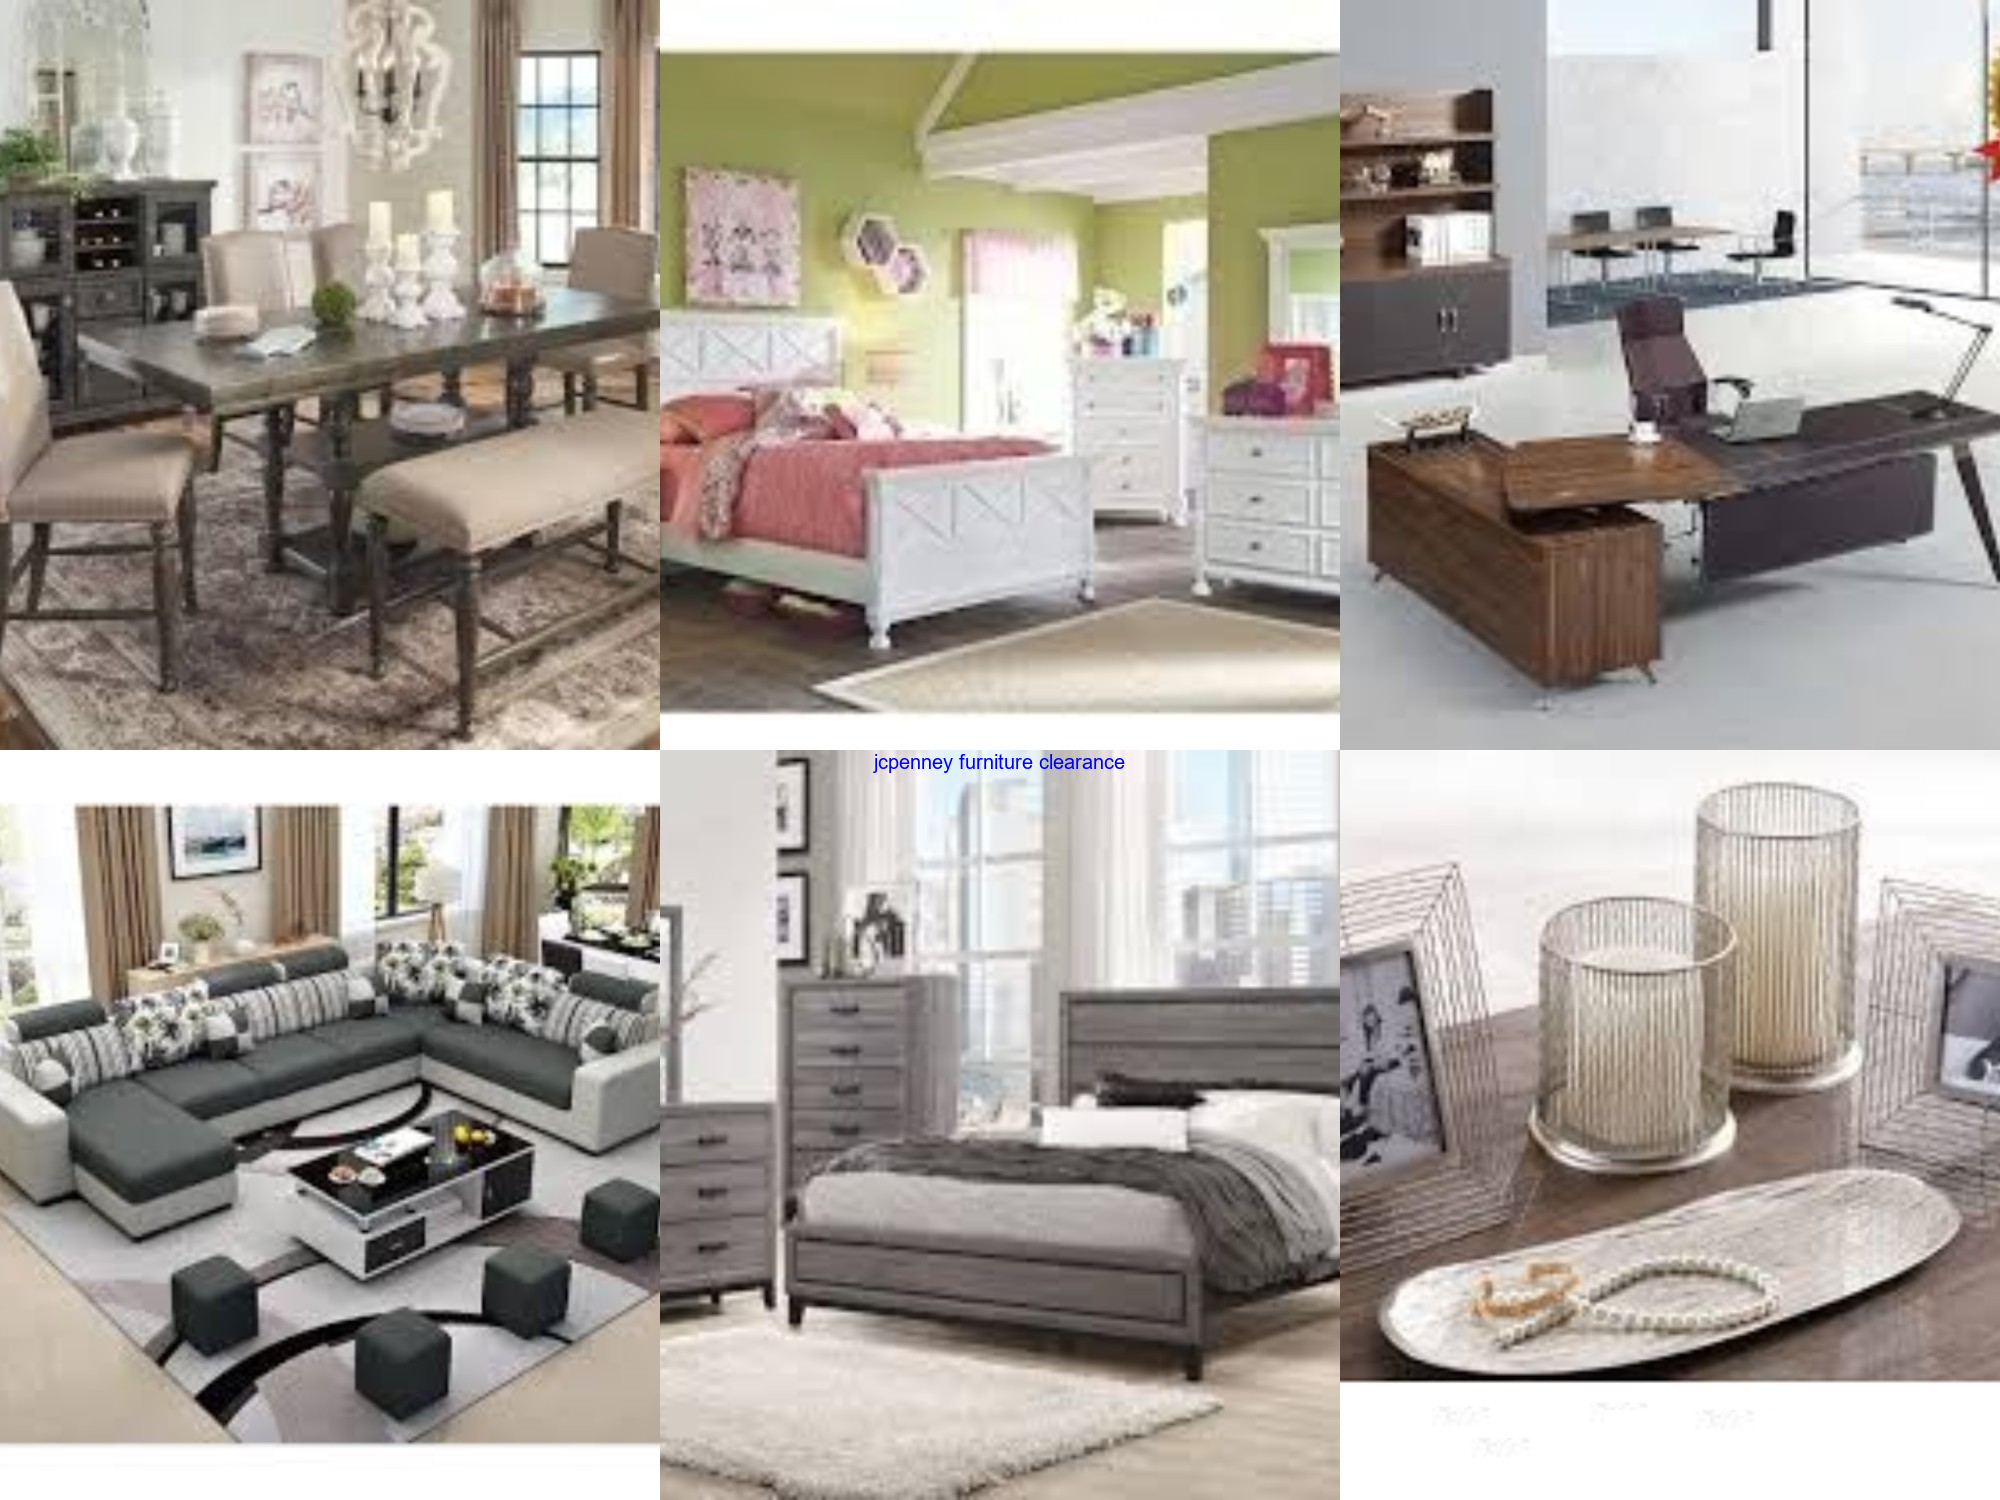 Jcpenney Furniture Clearance In 2020 Furniture Prices Furniture Wholesale Furniture